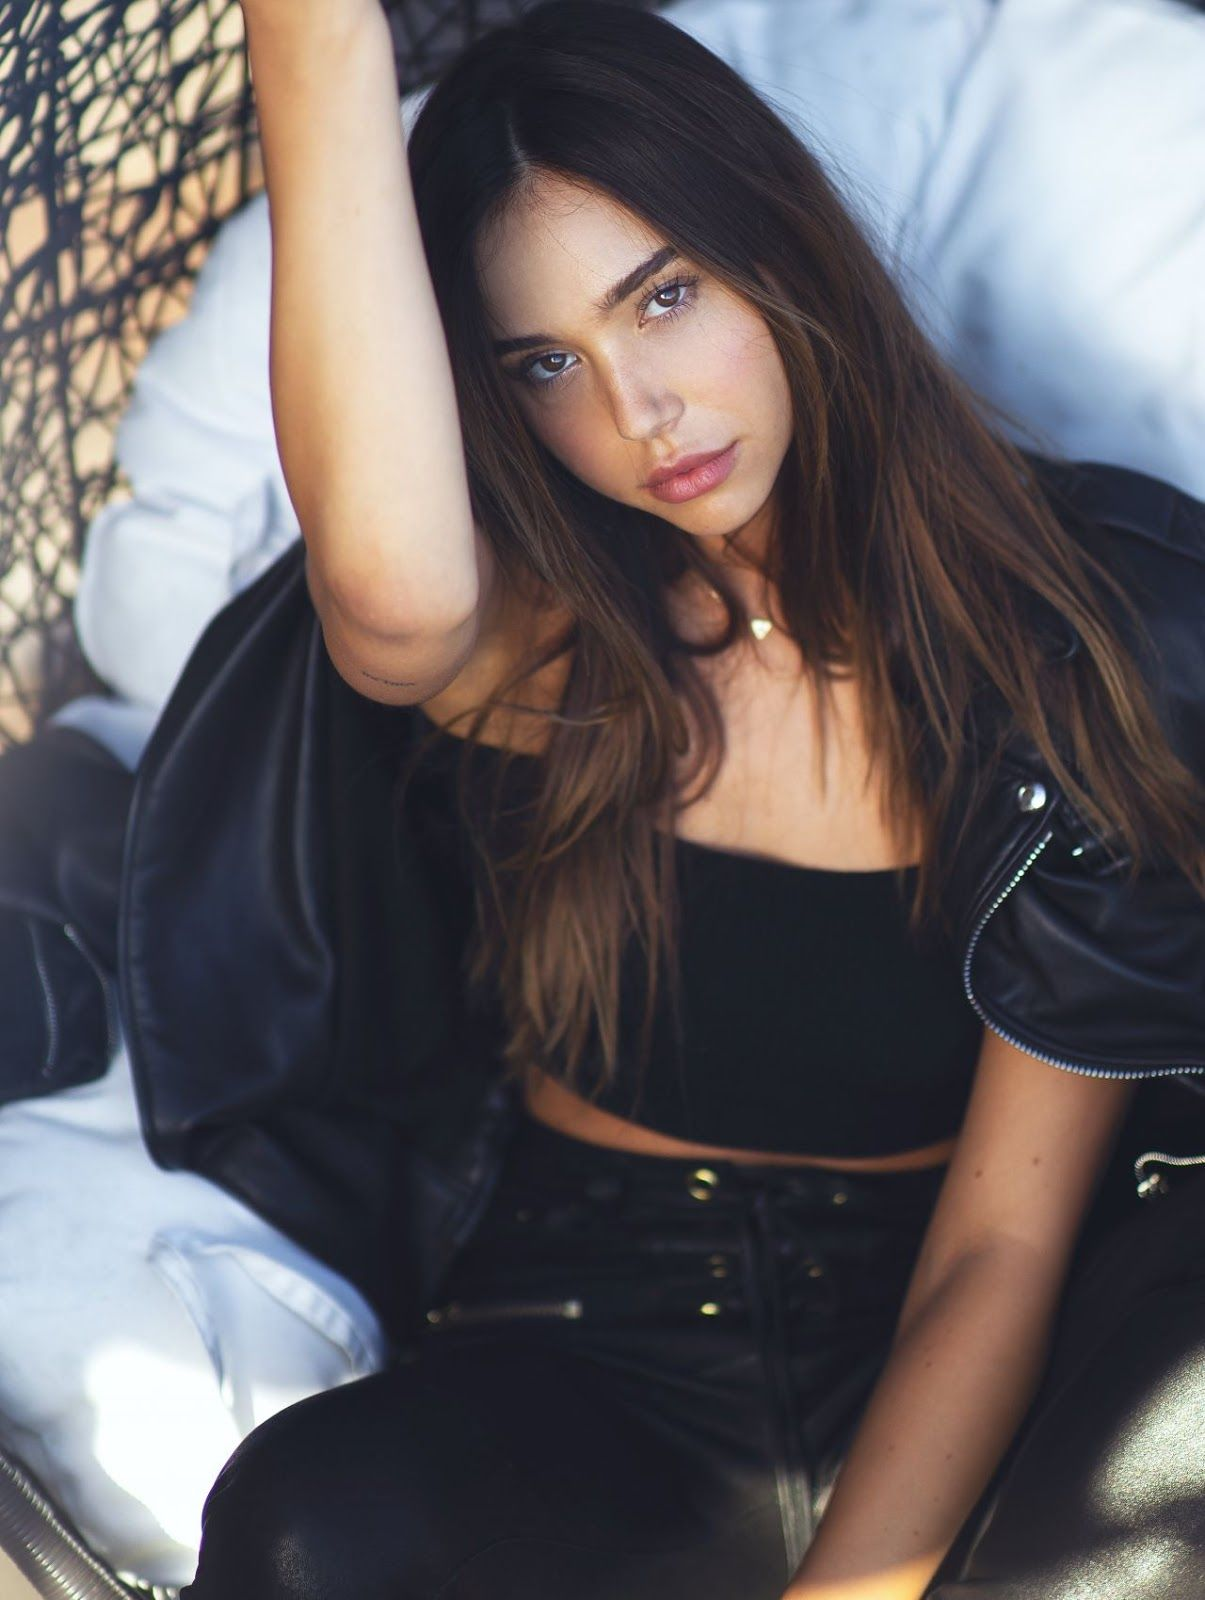 Alexis Ren Photoshoot August 2019